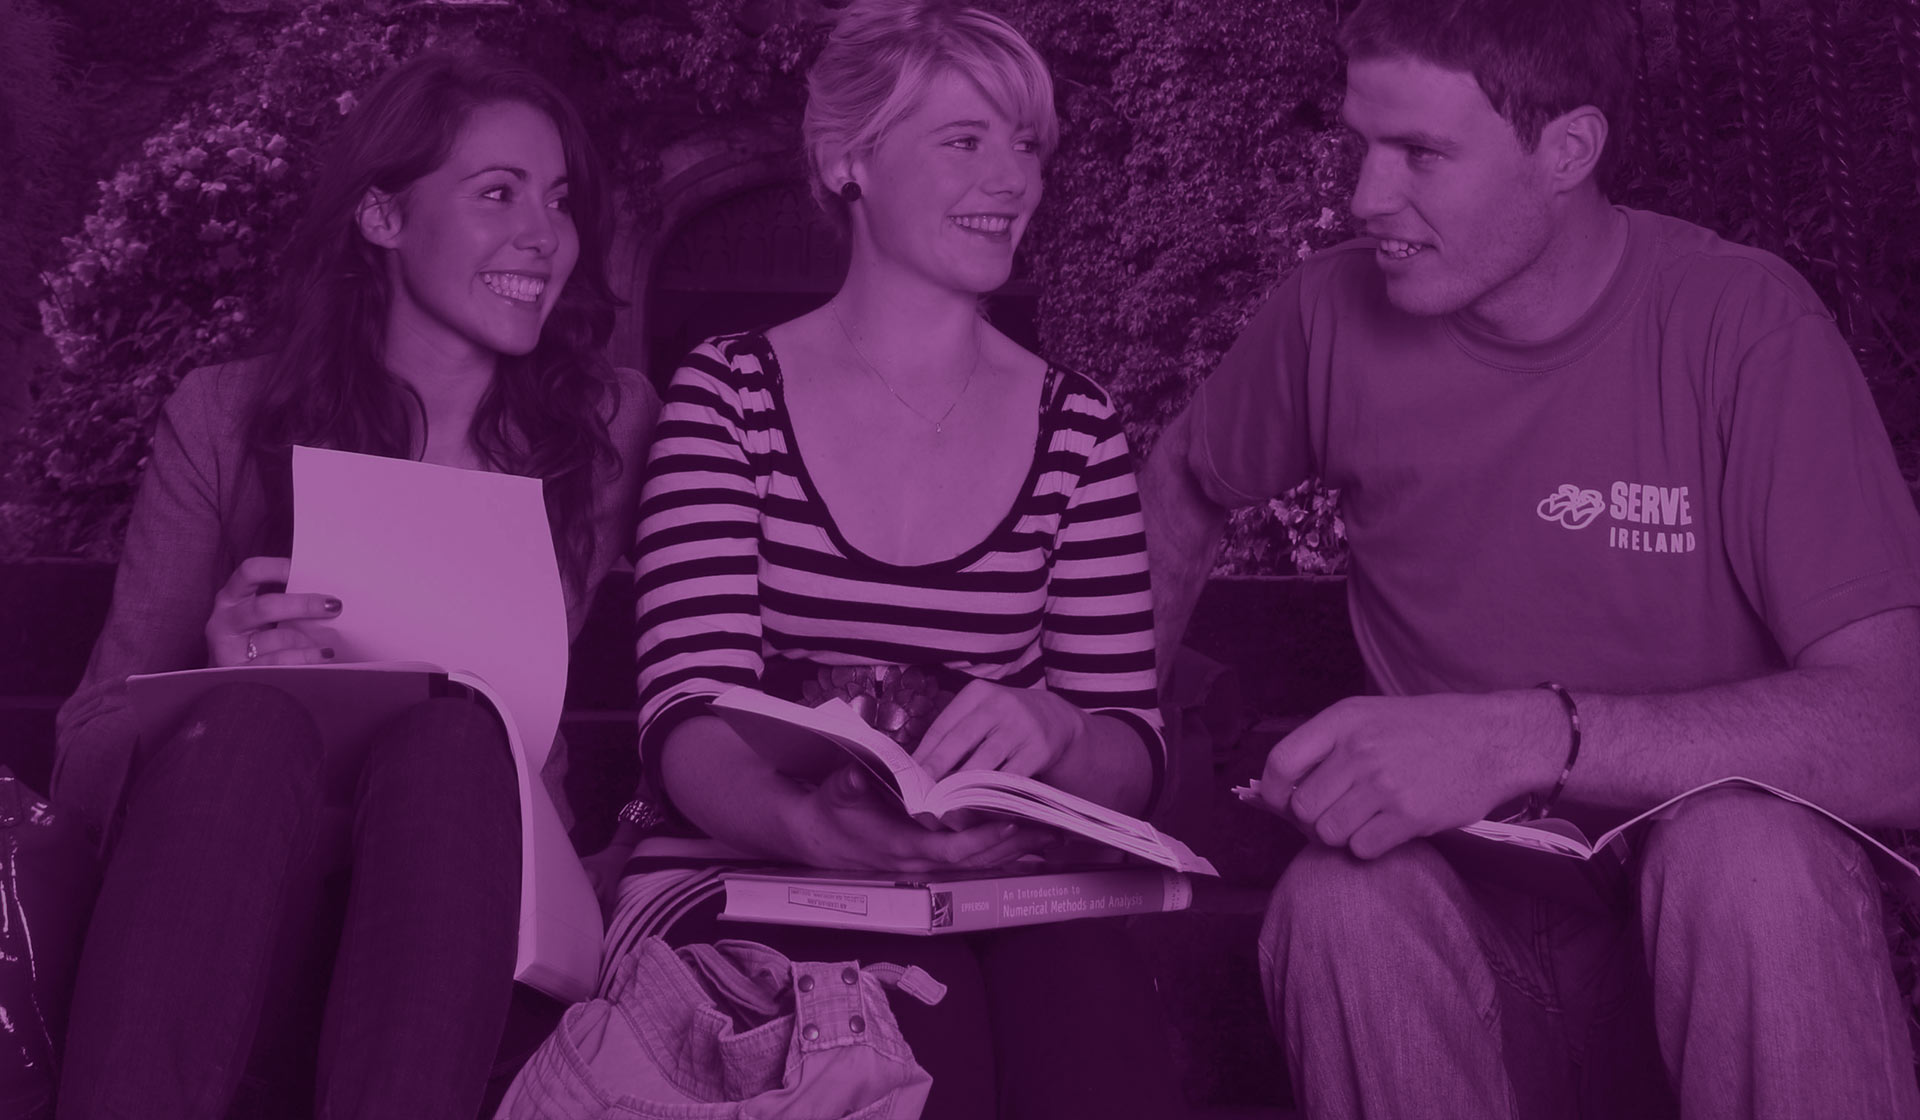 nui_galway_case_study_header